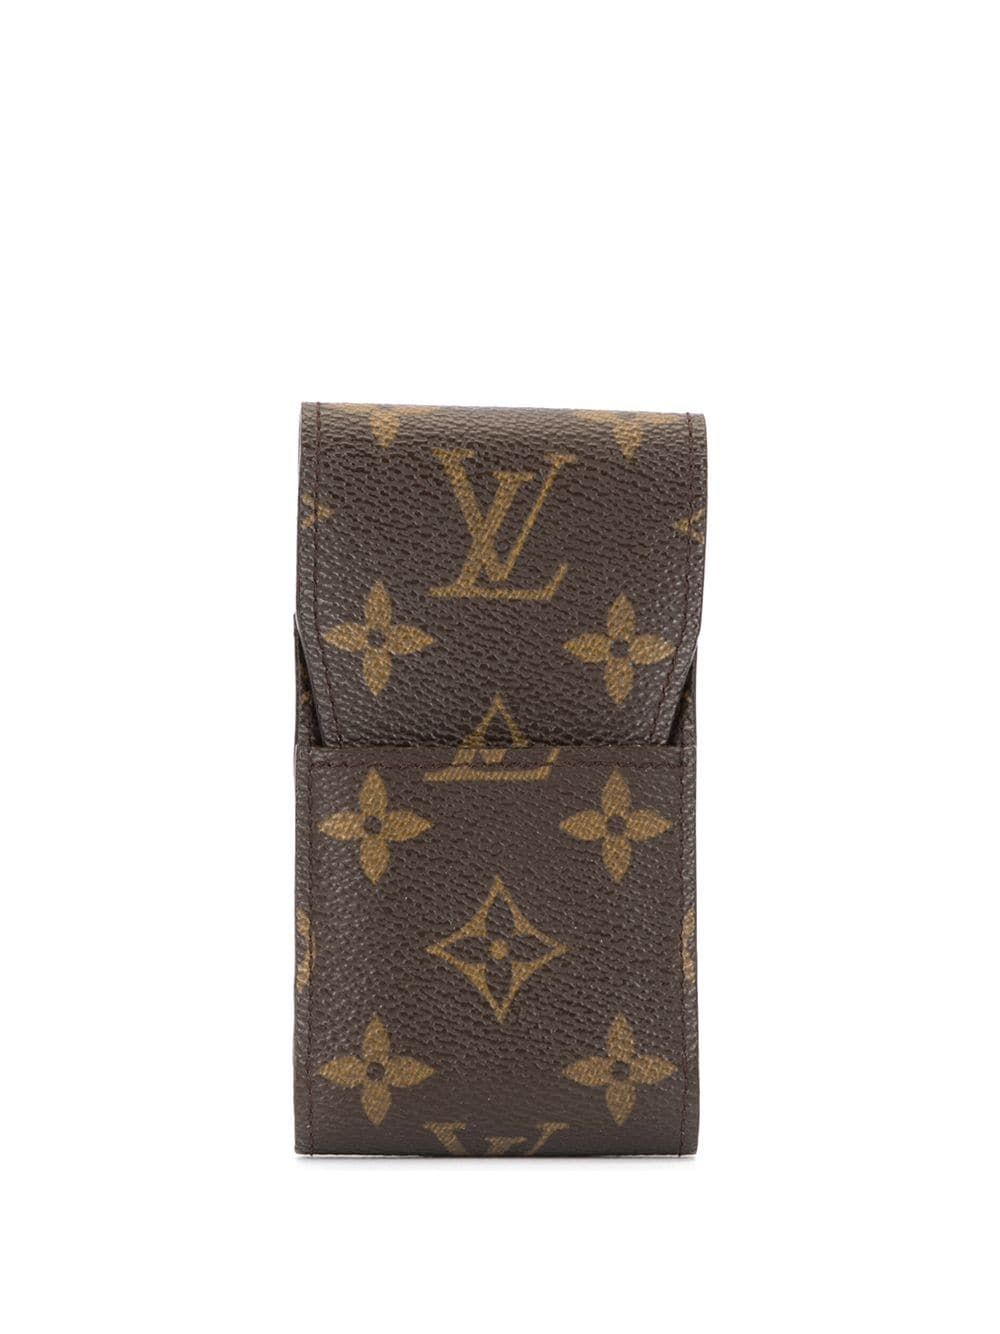 661df9daf4 Louis Vuitton Pre-Owned Etui Cigarette Case in 2019 | Products ...